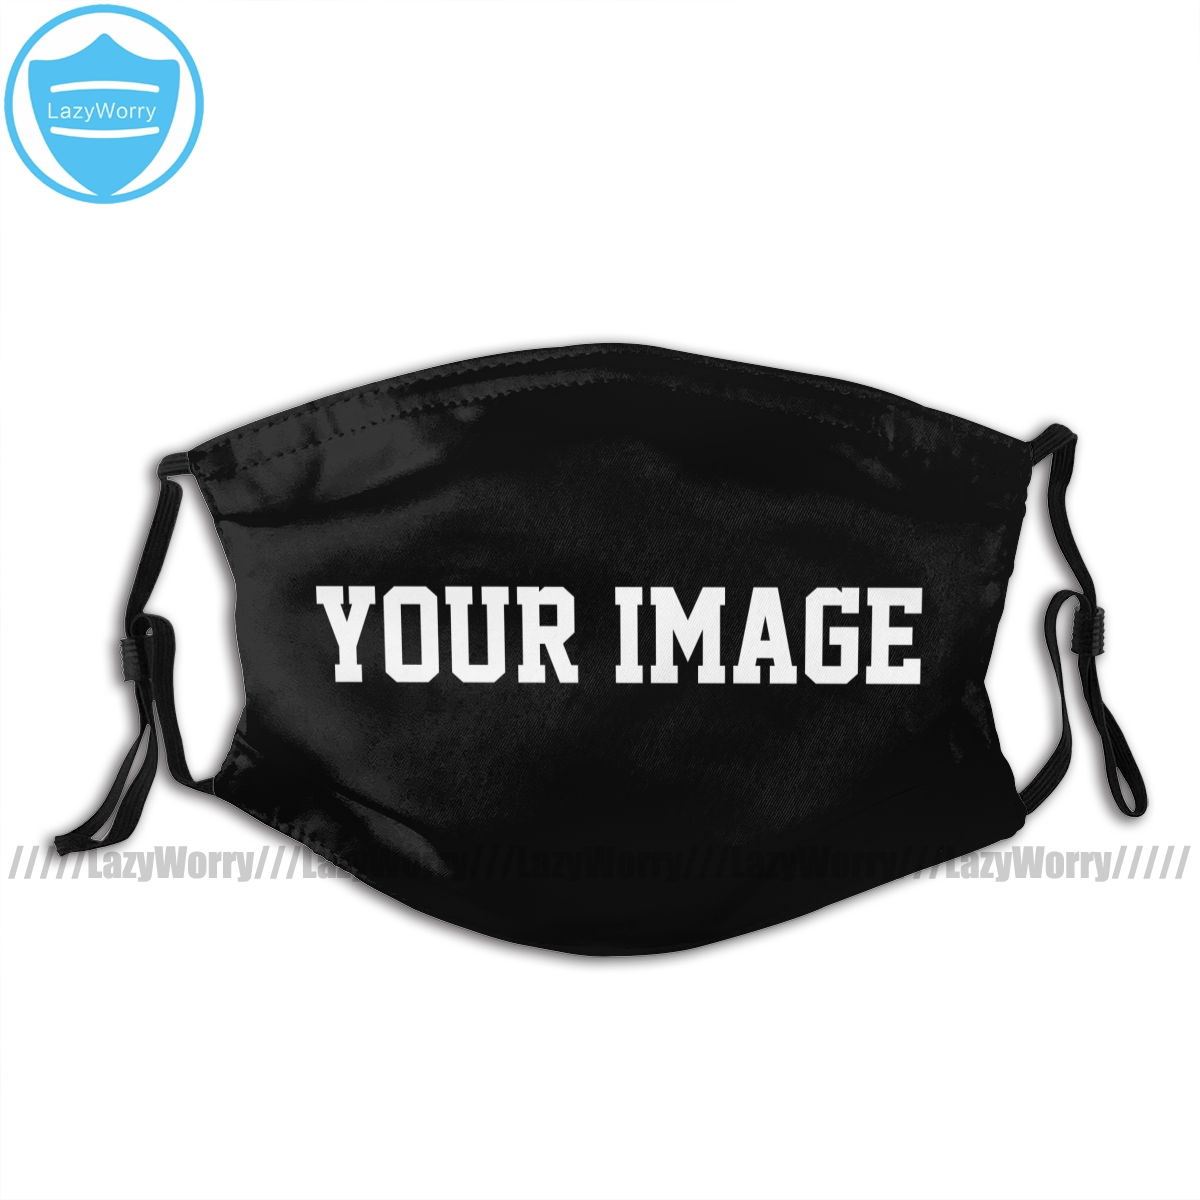 Your Image - Custom Made Face Mask